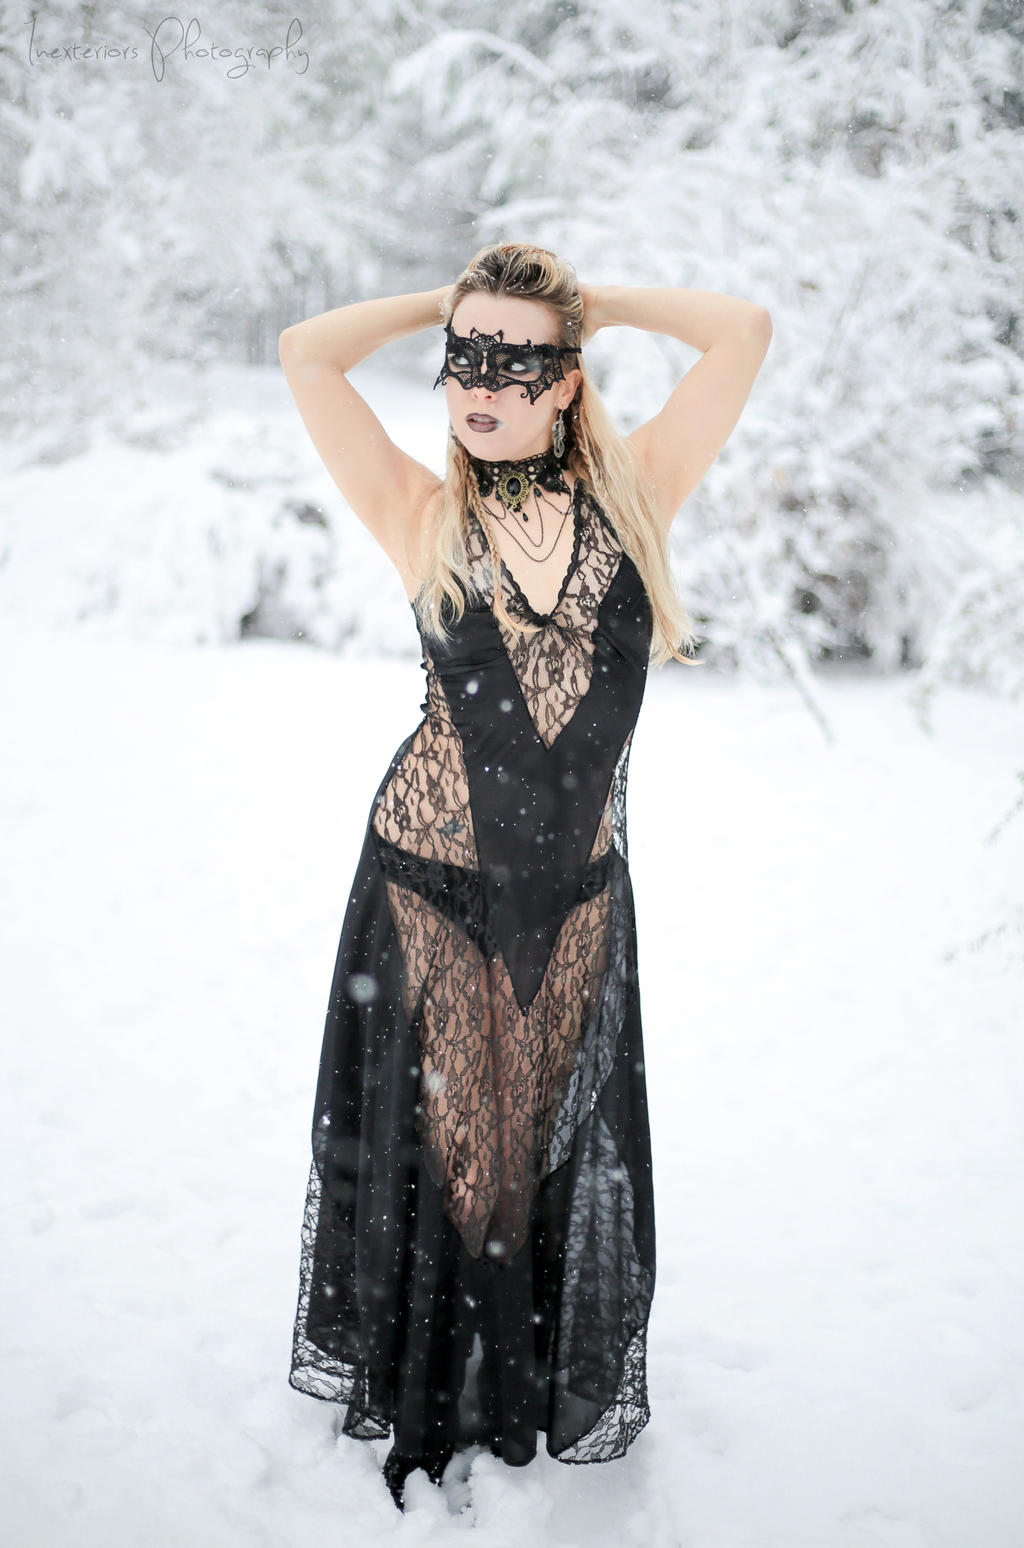 Snow Mistress #2 by Robyn-Eliza